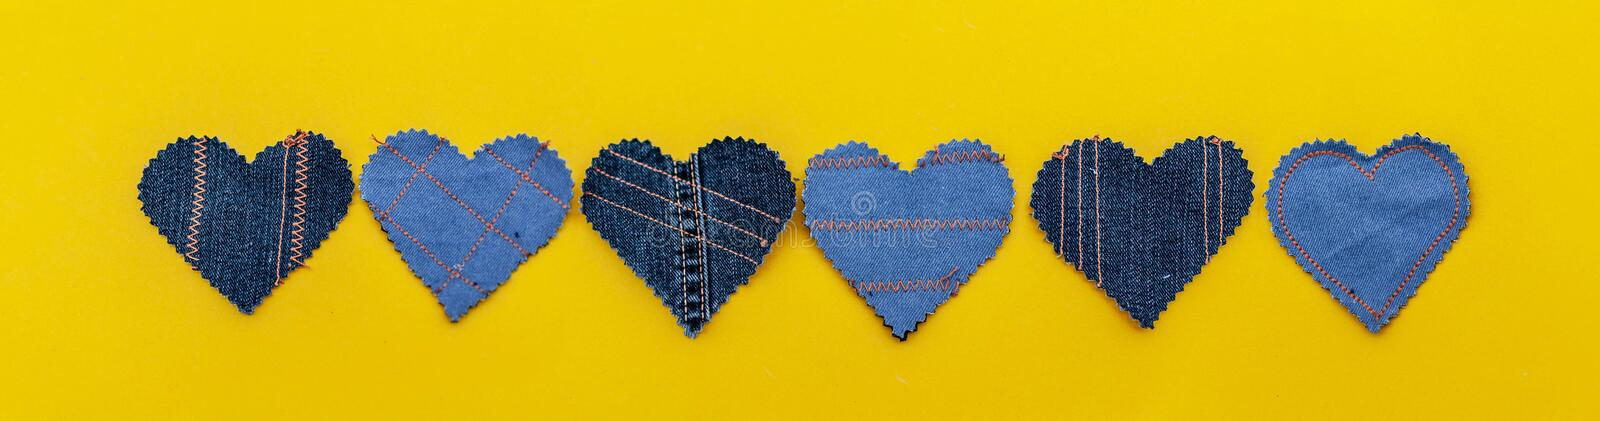 Hand made Jeans hearts on a yellow background. Flat lay, top view, minimal style, copy space for text. Symbol of love. For Valentine`s day greeting card or royalty free stock photo